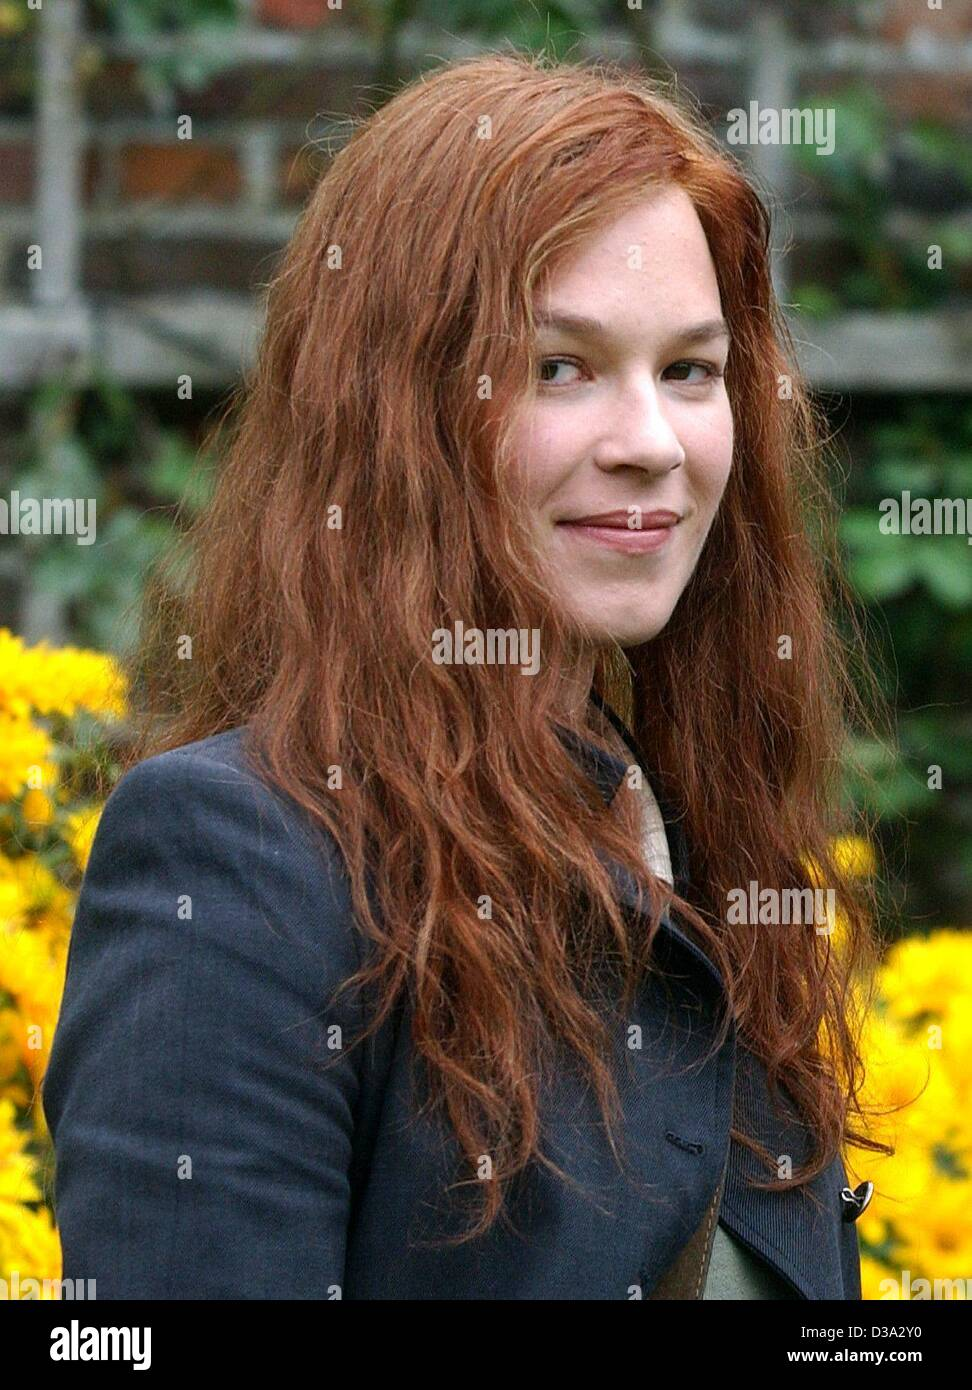 (dpa) - German film star Franka Potente smiles in Ochtrup, Germany, 19 July 2002. After her first leading Hollywood - Stock Image